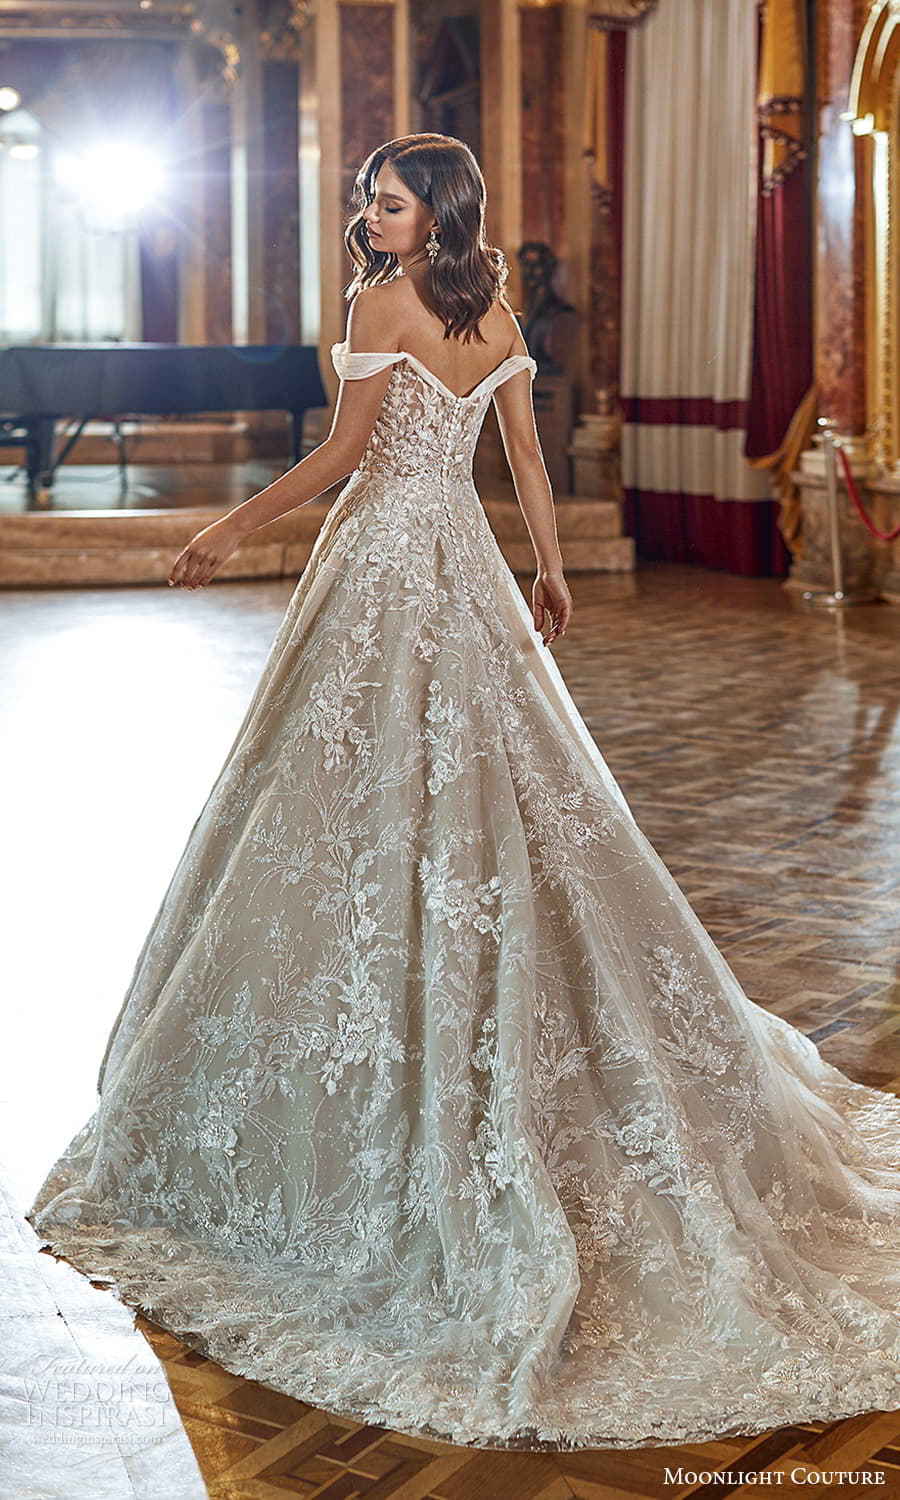 moonlight couture fall 2021 bridal off shoulder straps sweetheart neckline heavily embellished bodice a line ball gown wedding dress chapel trian (1) bv